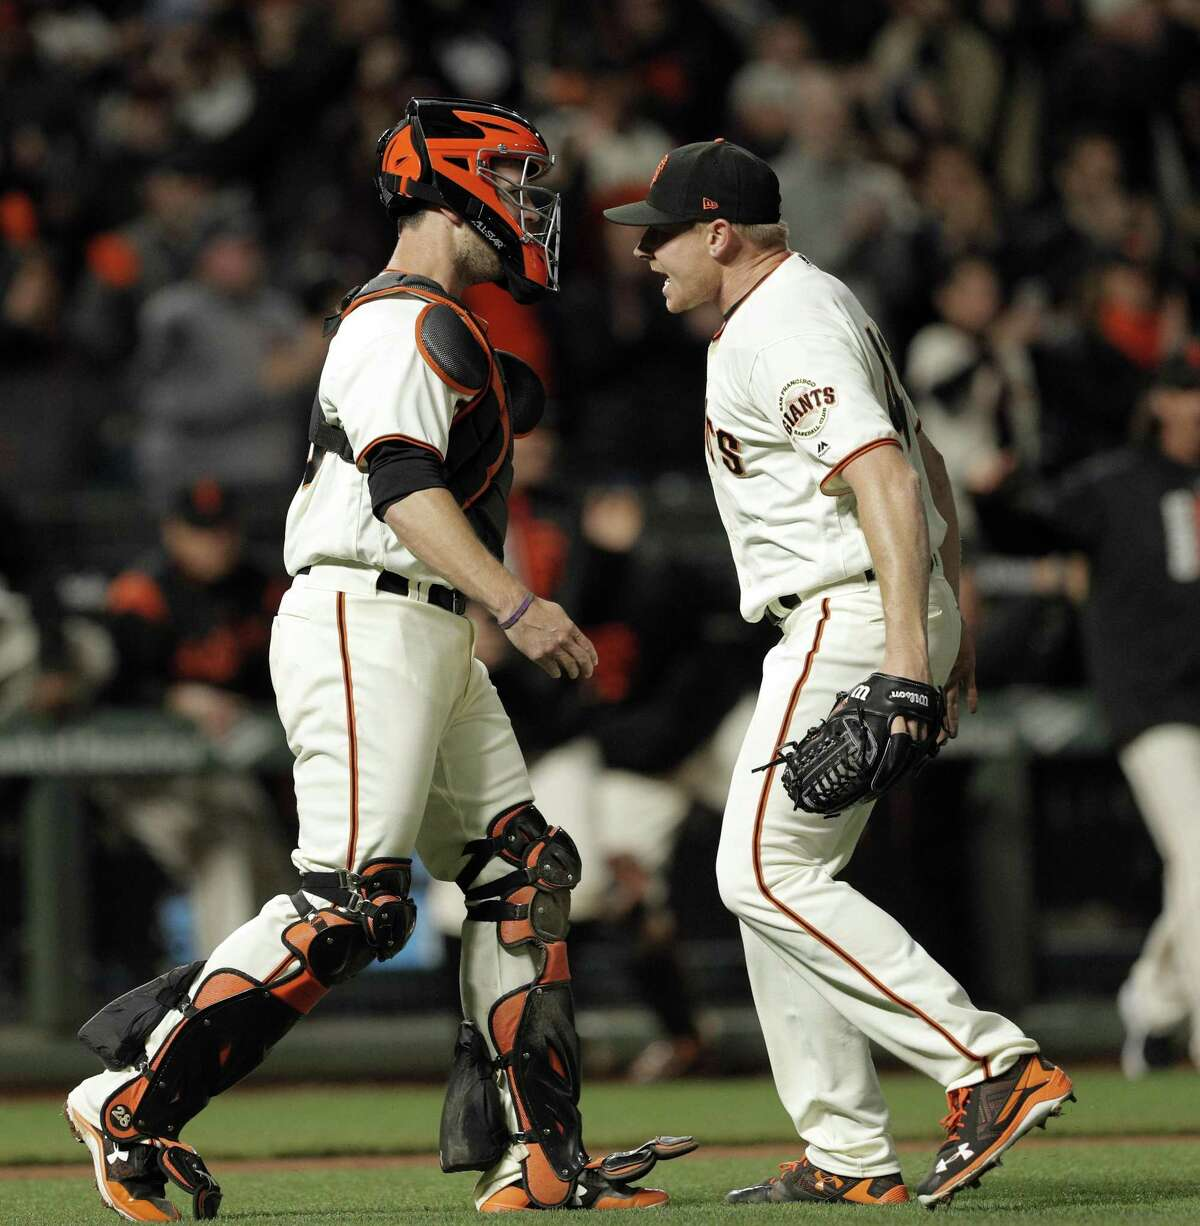 Mark Melancon (41) celebrates with Buster Posey (28) after Posey got the last out on an attempted steal as the San Francisco Giants played the Los Angeles Dodgers at AT&T Park in San Francisco, Calif., on Monday, April 24, 2017.